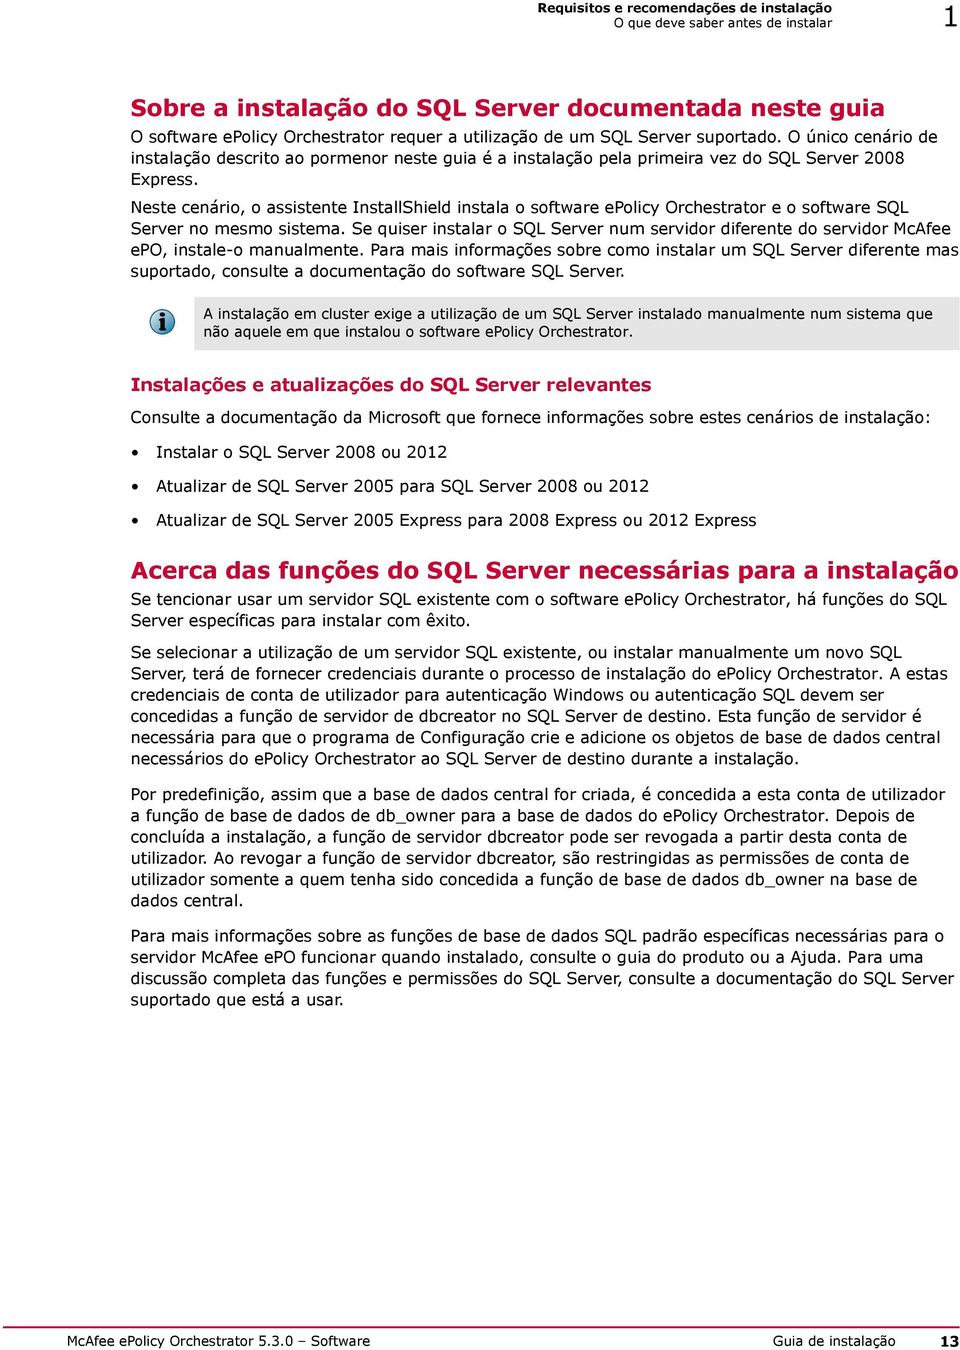 Neste cenário, o assistente InstallShield instala o software epolicy Orchestrator e o software SQL Server no mesmo sistema.